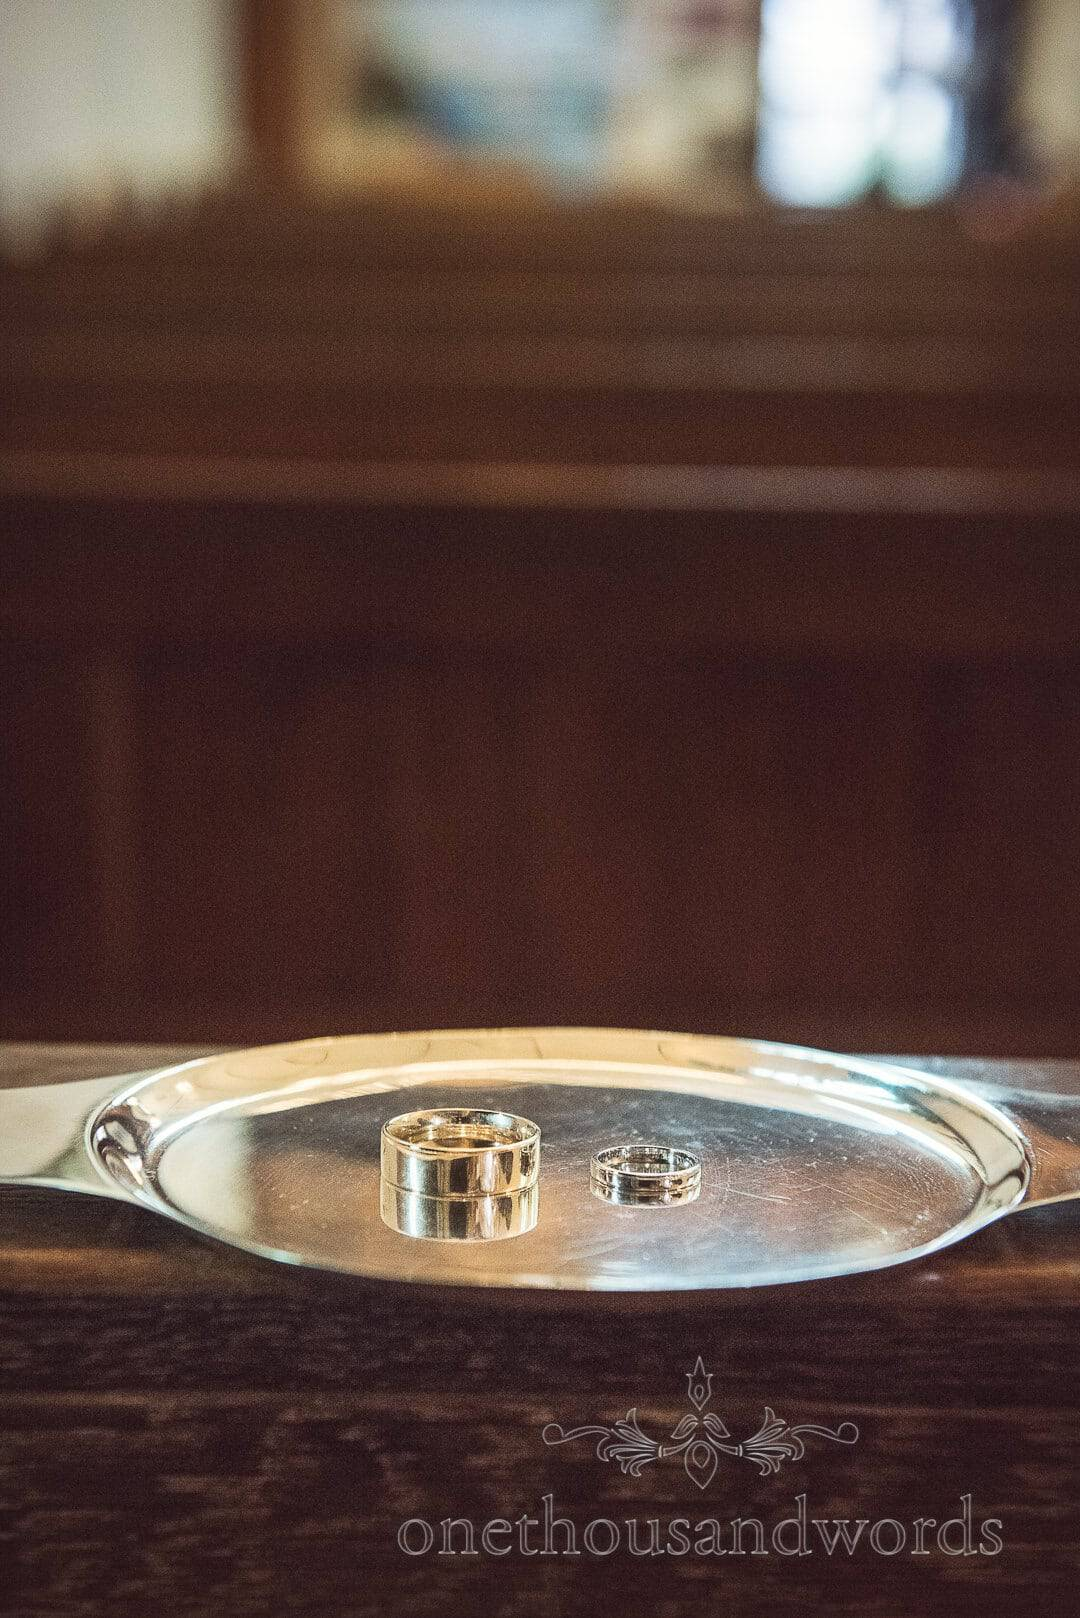 Wedding rings on silver tray in Catholic Church on wedding morning in Swanage